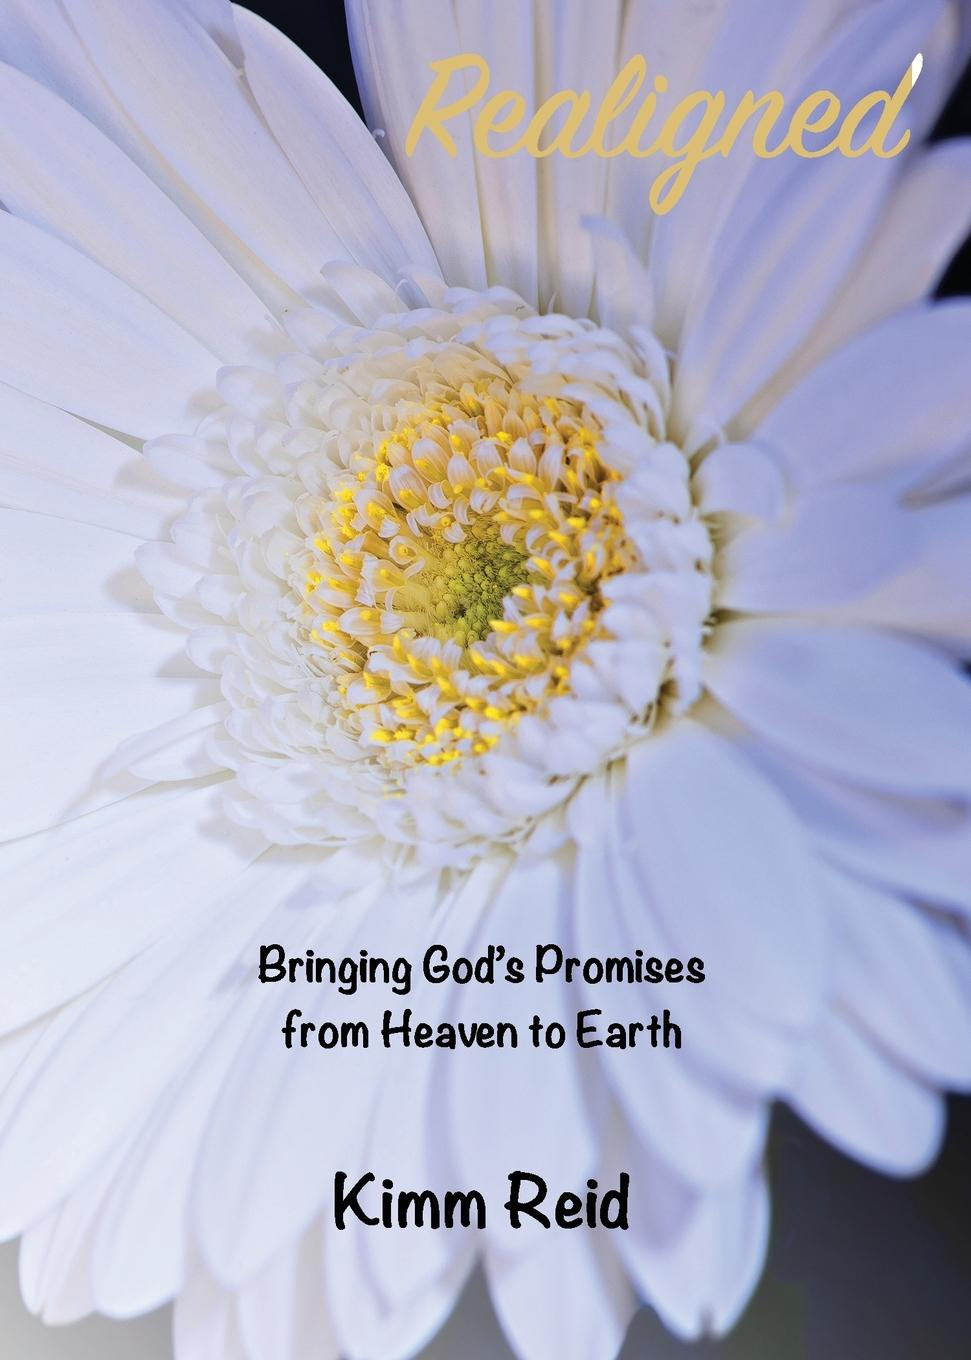 Kimm Reid Realigned. Bringing God.s Promises from Heaven to Earth can t wait to get to heaven